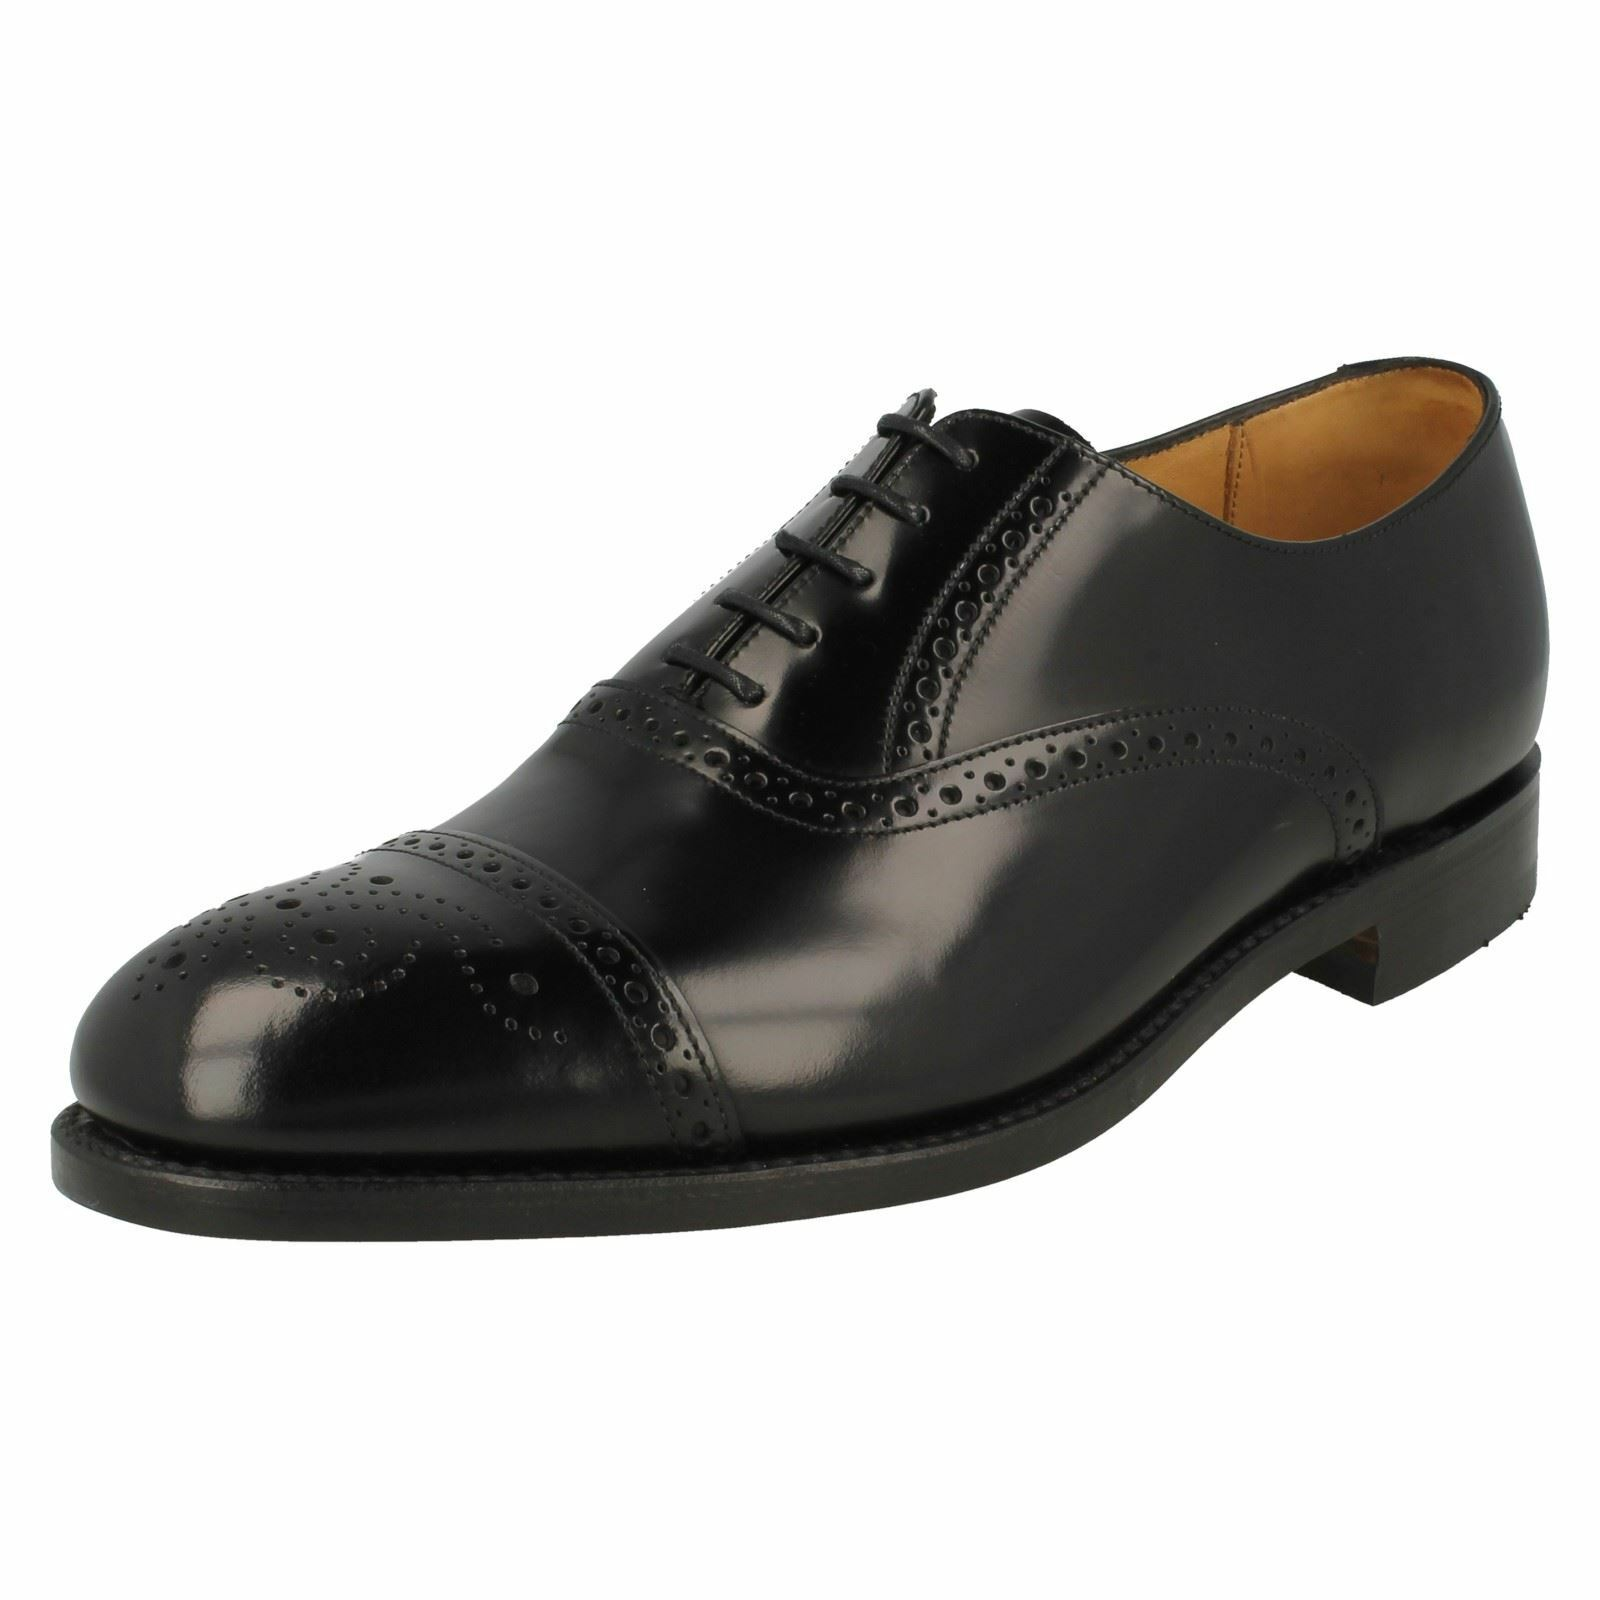 Herren Oban schwarz Leder semi brogue lace up shoe by Loake 18e606